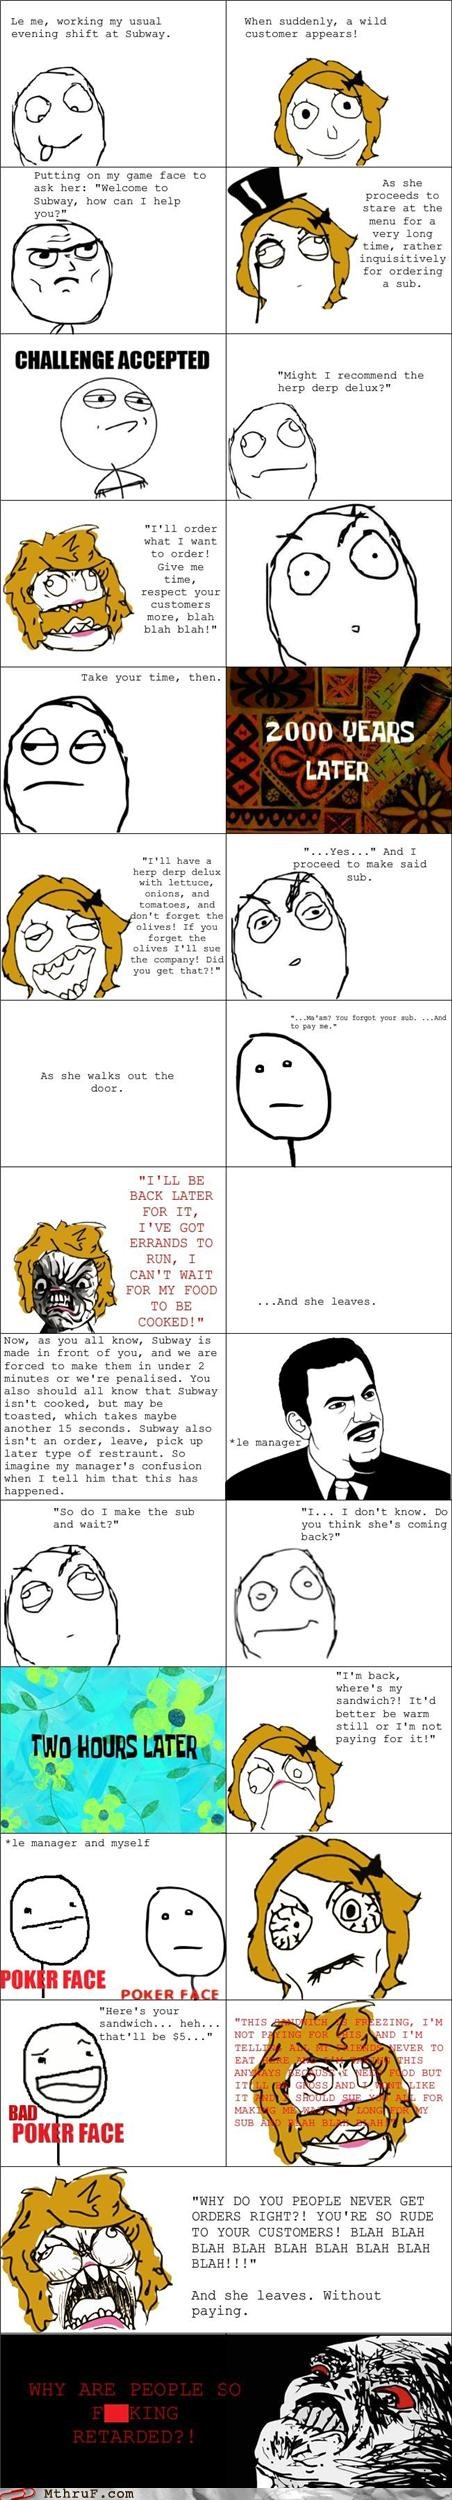 customers,fast food,rage comic,the customer is never rig,wrong